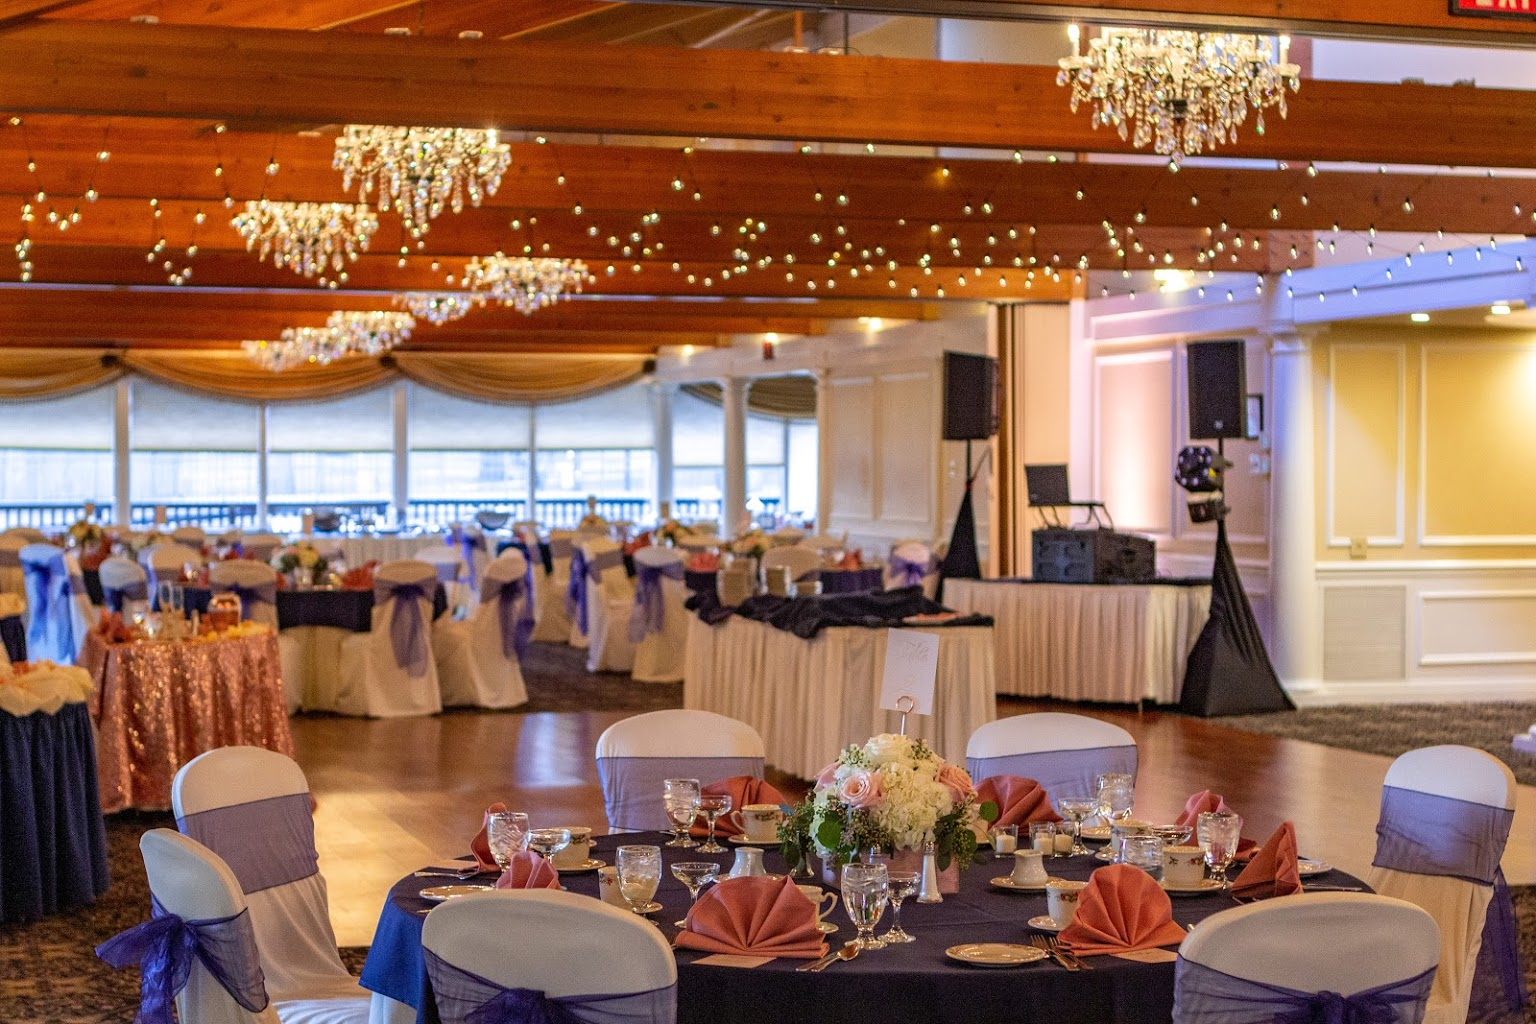 wedding setup at Country Club Events by Marco's - Pennsauken, NJ - Banquet Hall